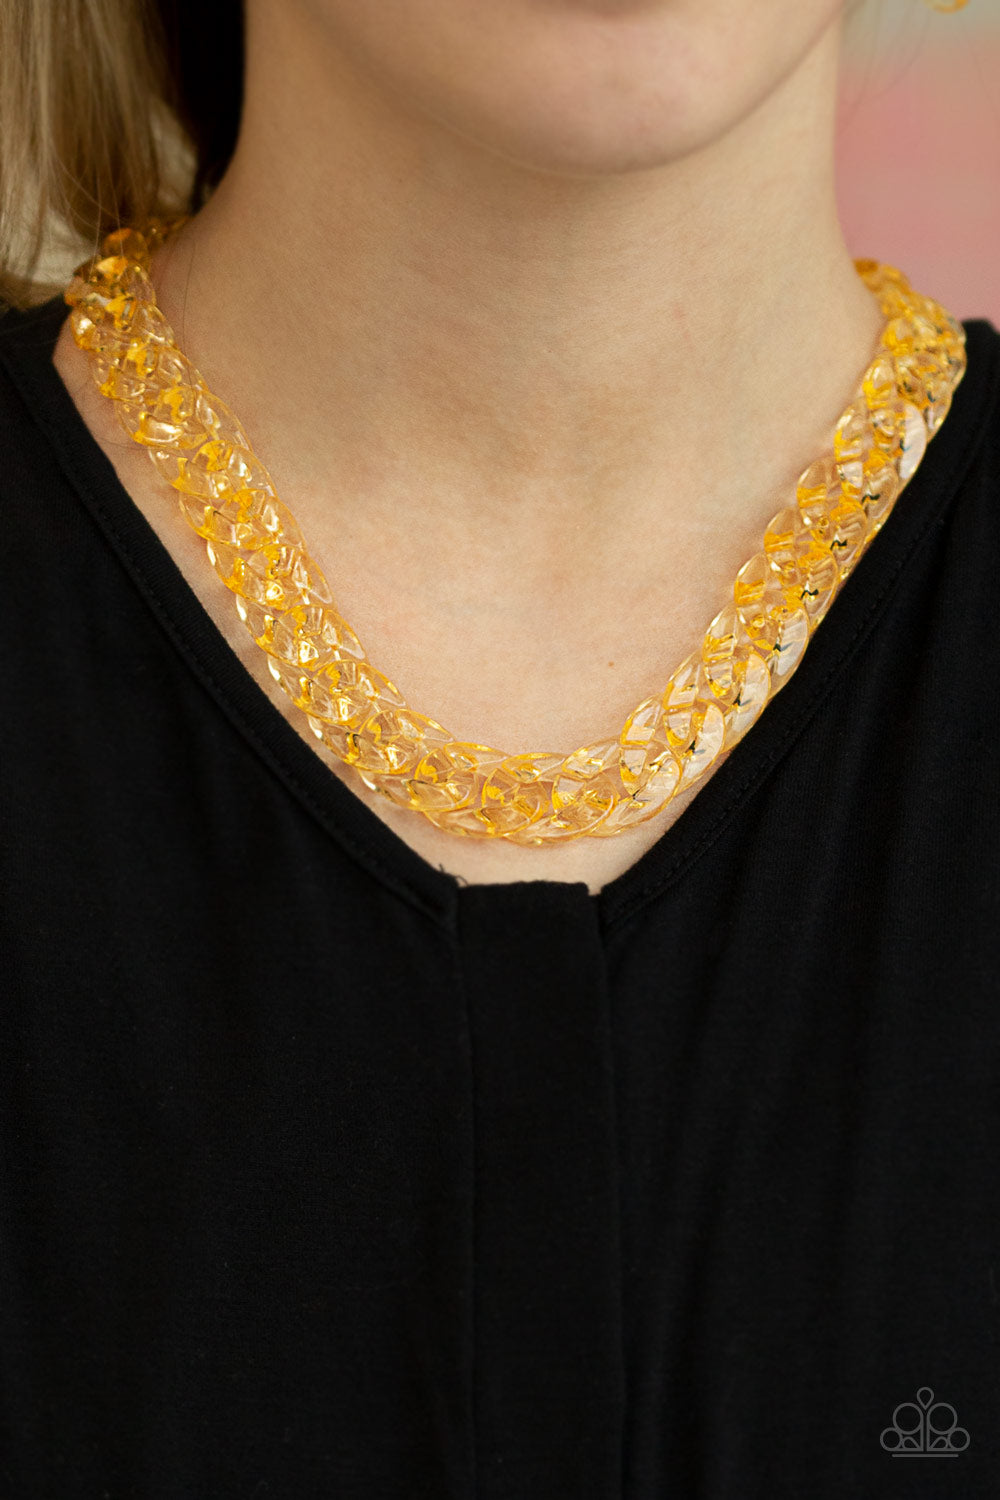 Paparazzi Accessories Put It On Ice - Gold Necklaces - Lady T Accessories